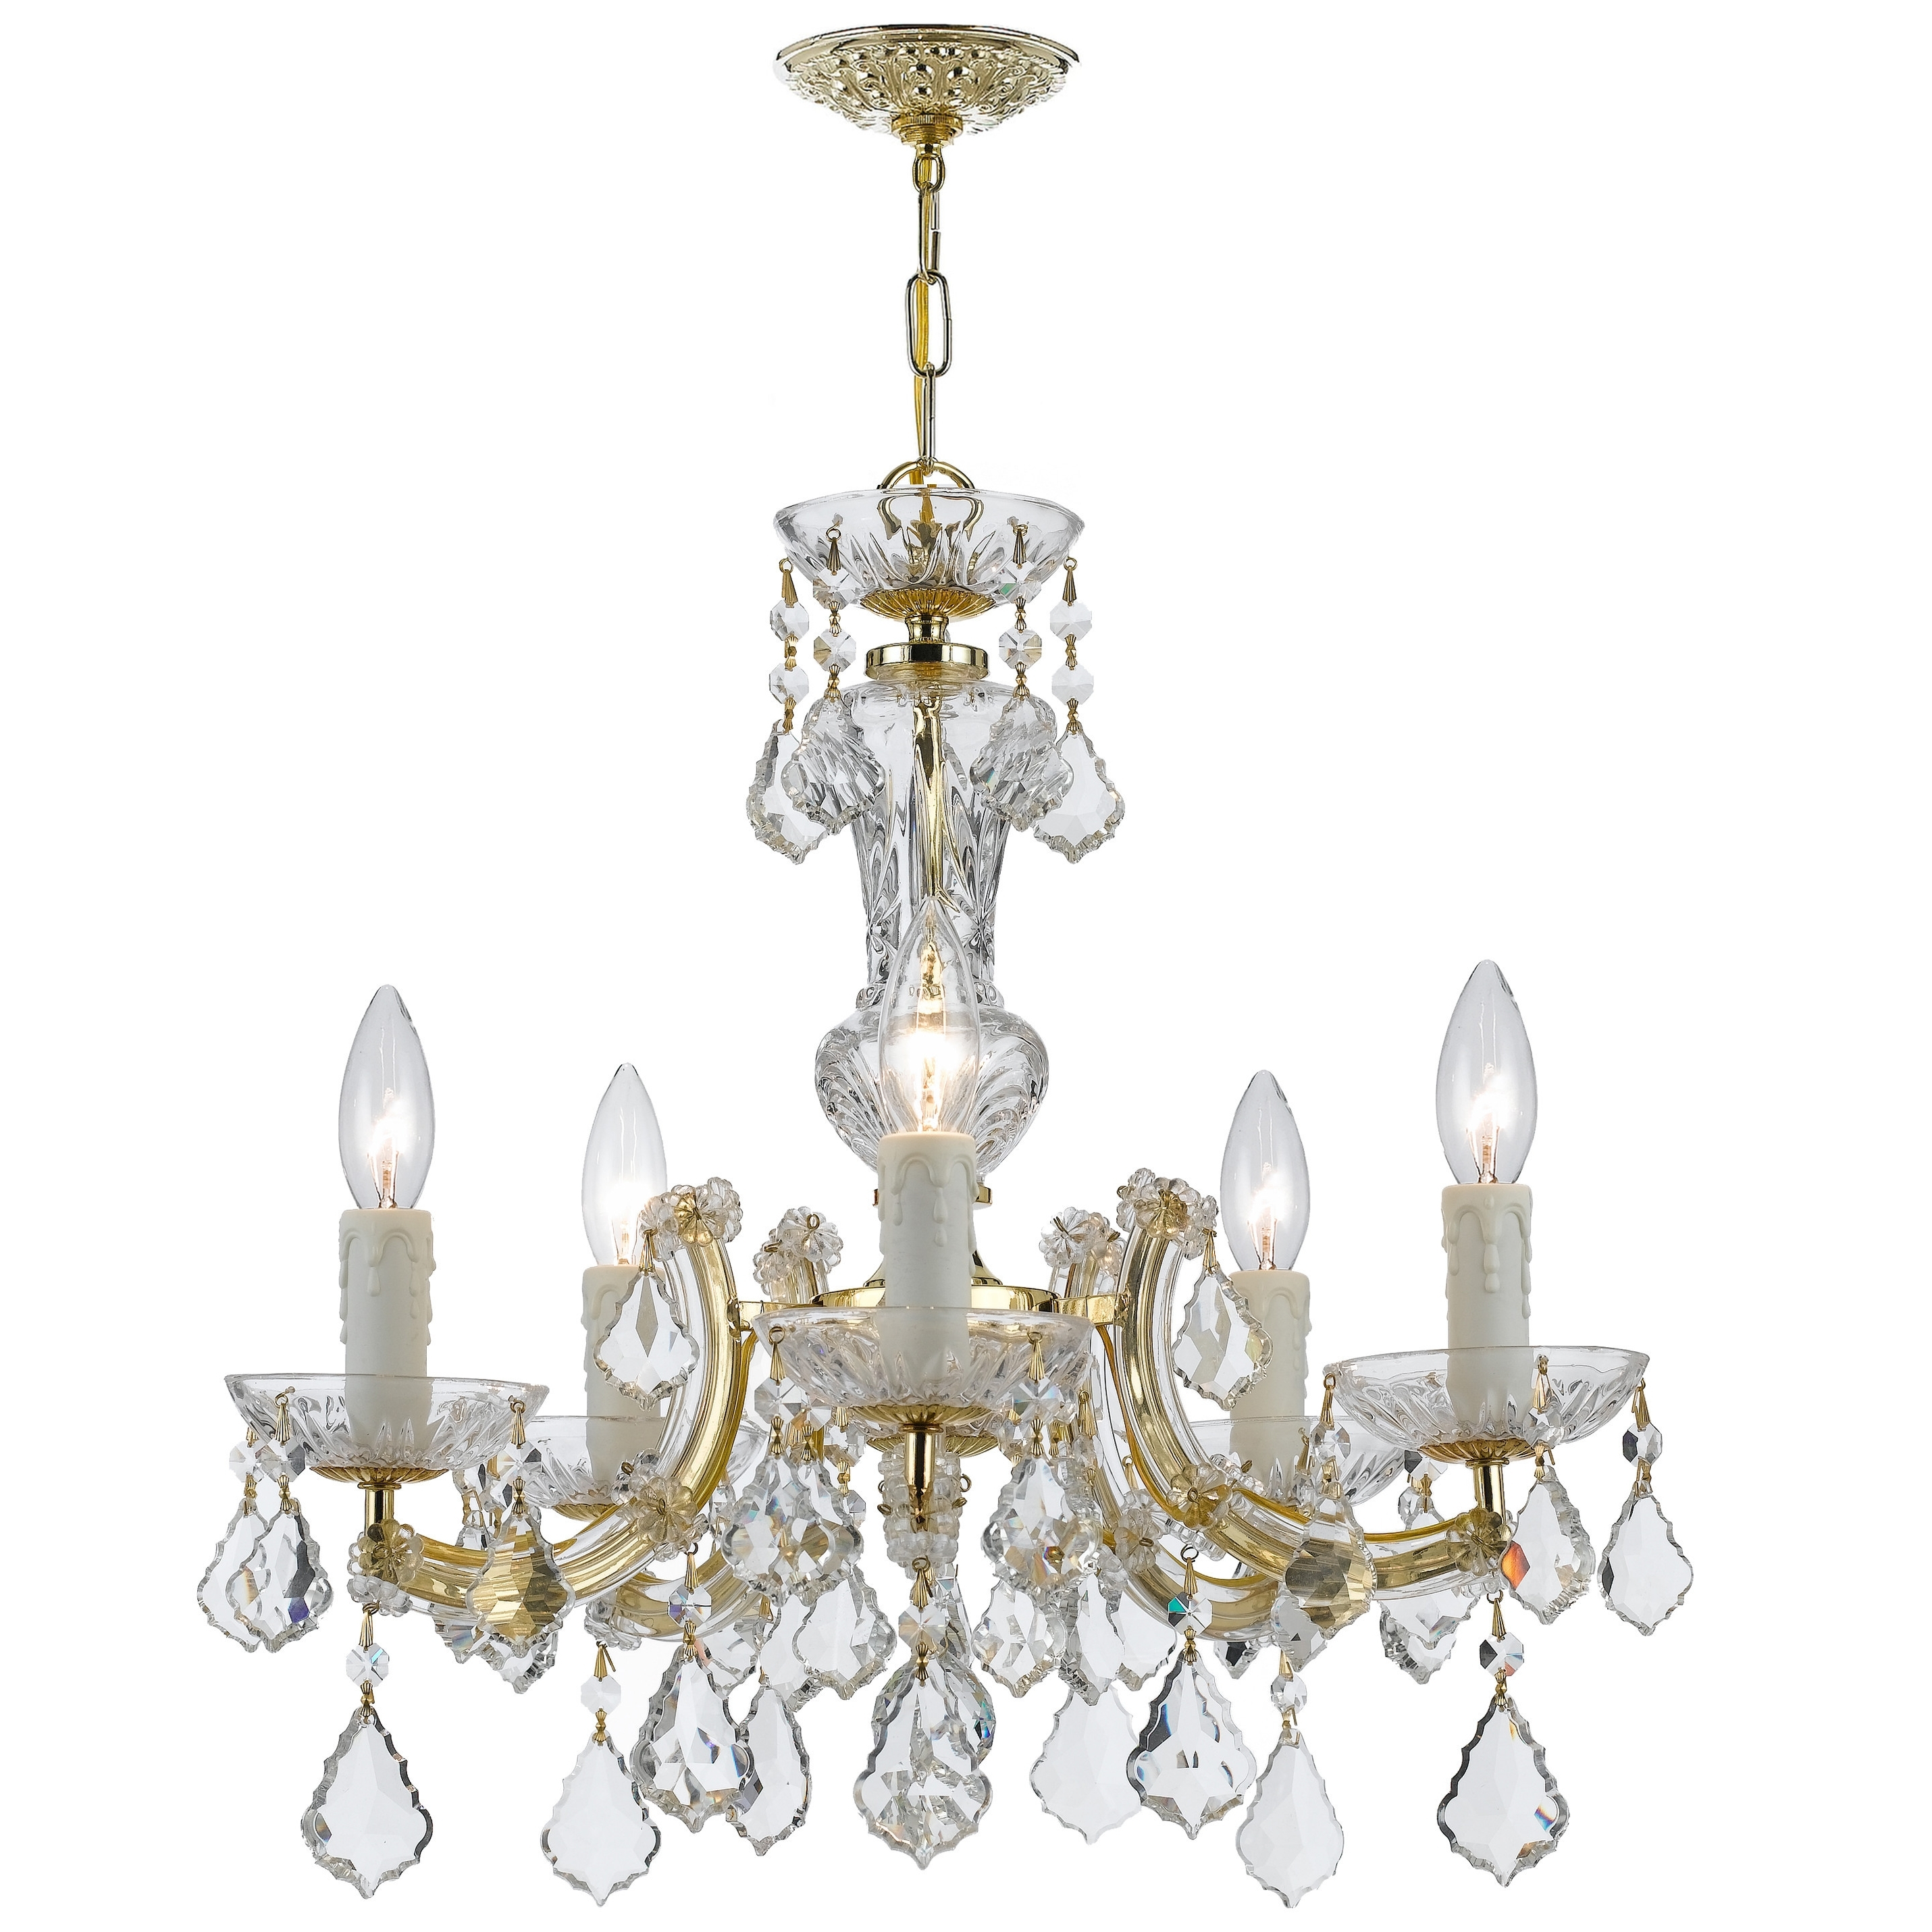 Newest Chandeliers : Maria Theresa Chandelier Elegant Endon Lighting 2 Within Endon Lighting Chandeliers (View 13 of 20)